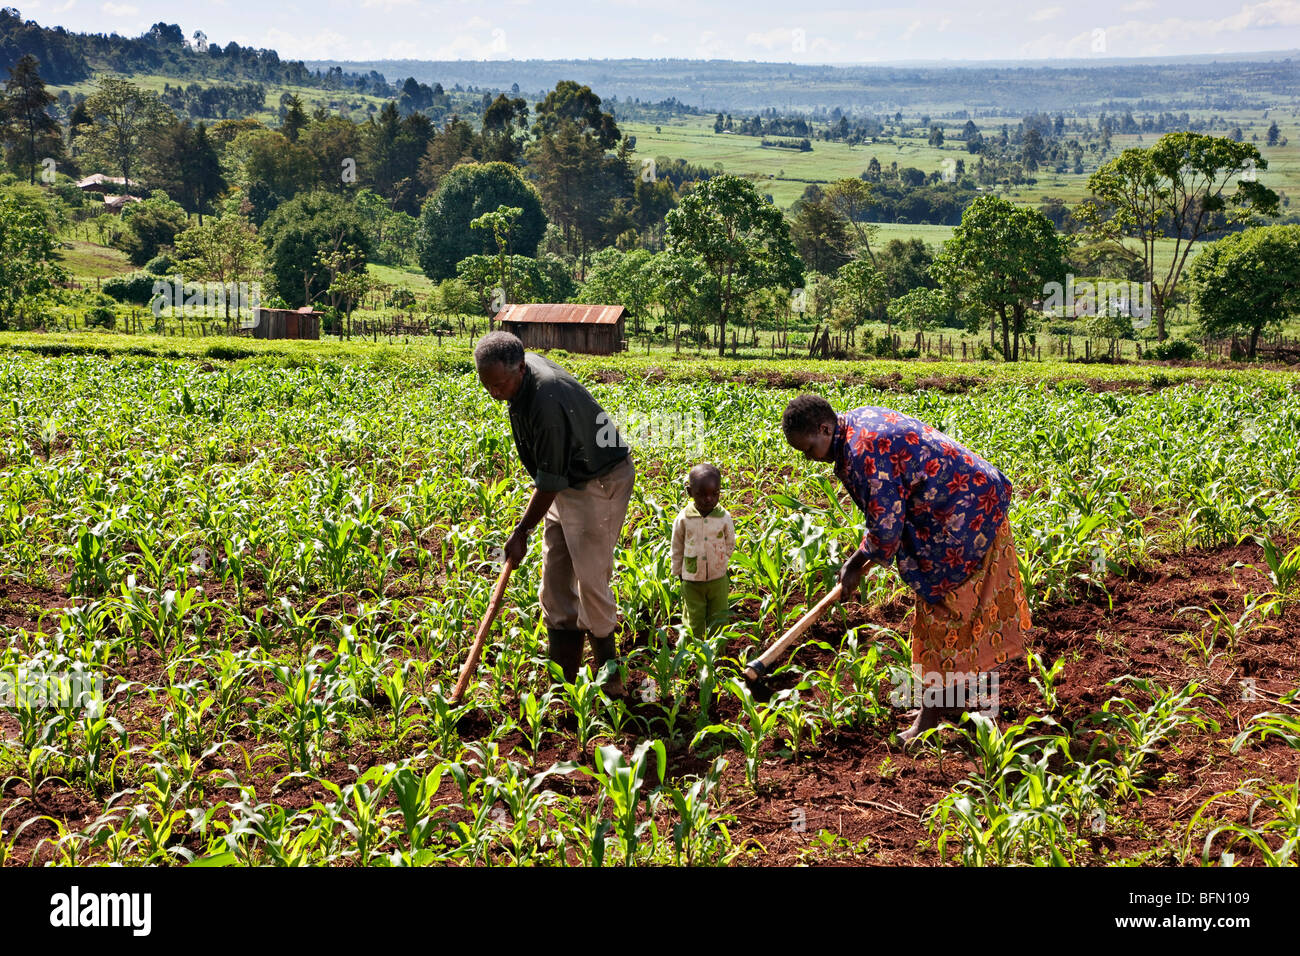 Kenya, Kapsabet District. A morning rural scene with an elderly couple accompanied by their grandson weeding a field - Stock Image